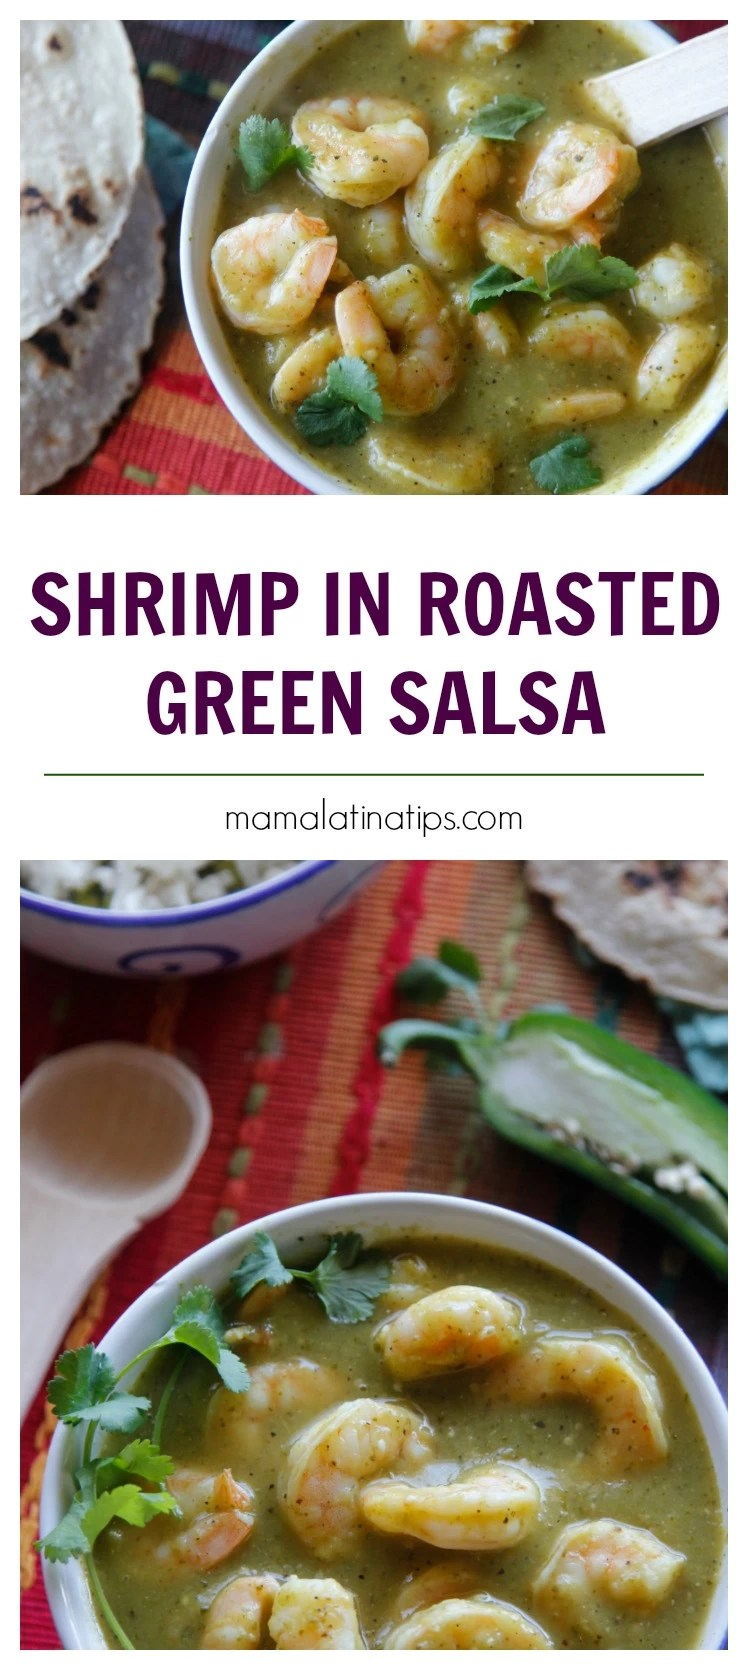 A deep roasted salsa combined with succulent shrimp, perfect for a quick satisfying meal. #shrimp #Roastedsalsaverde #RoastedGreenSauce #MexicanFood #salsaverde